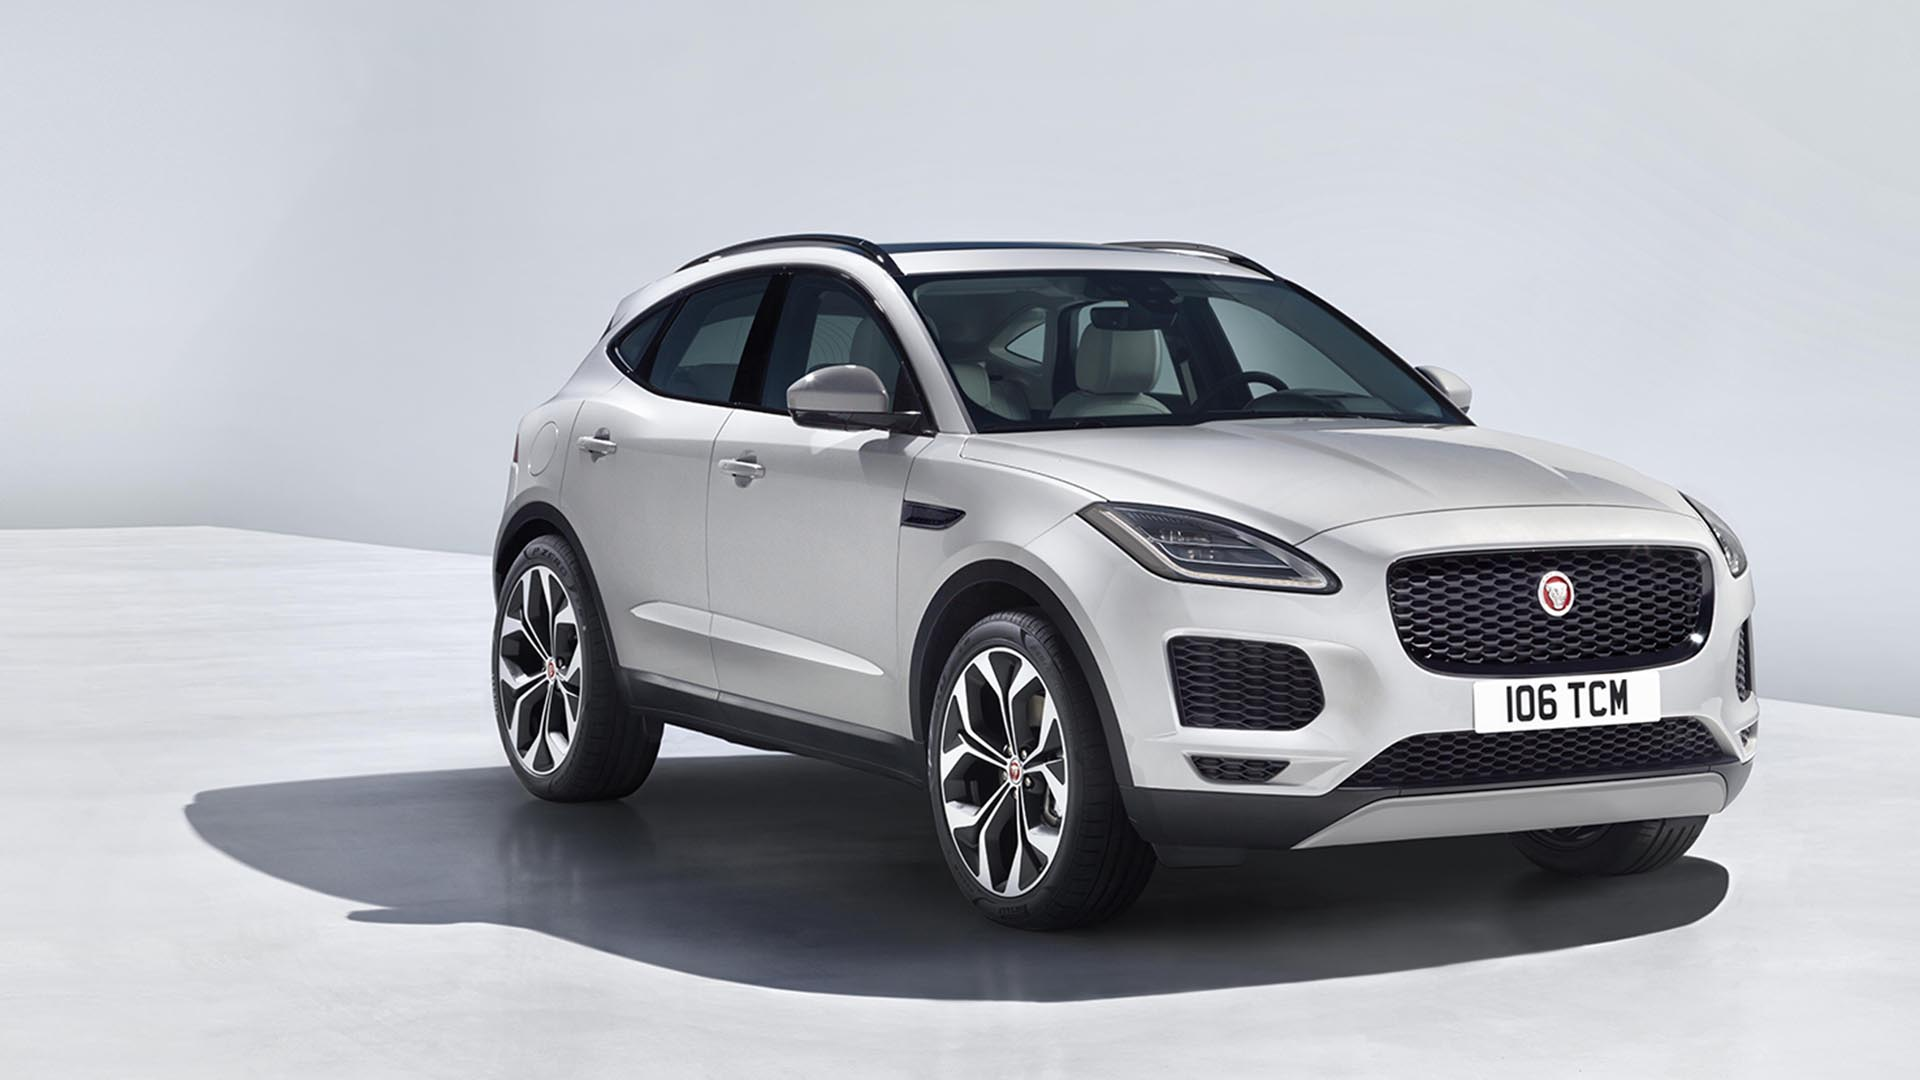 Jaguar E-Pace sets Guinness world record for furthest barrel roll